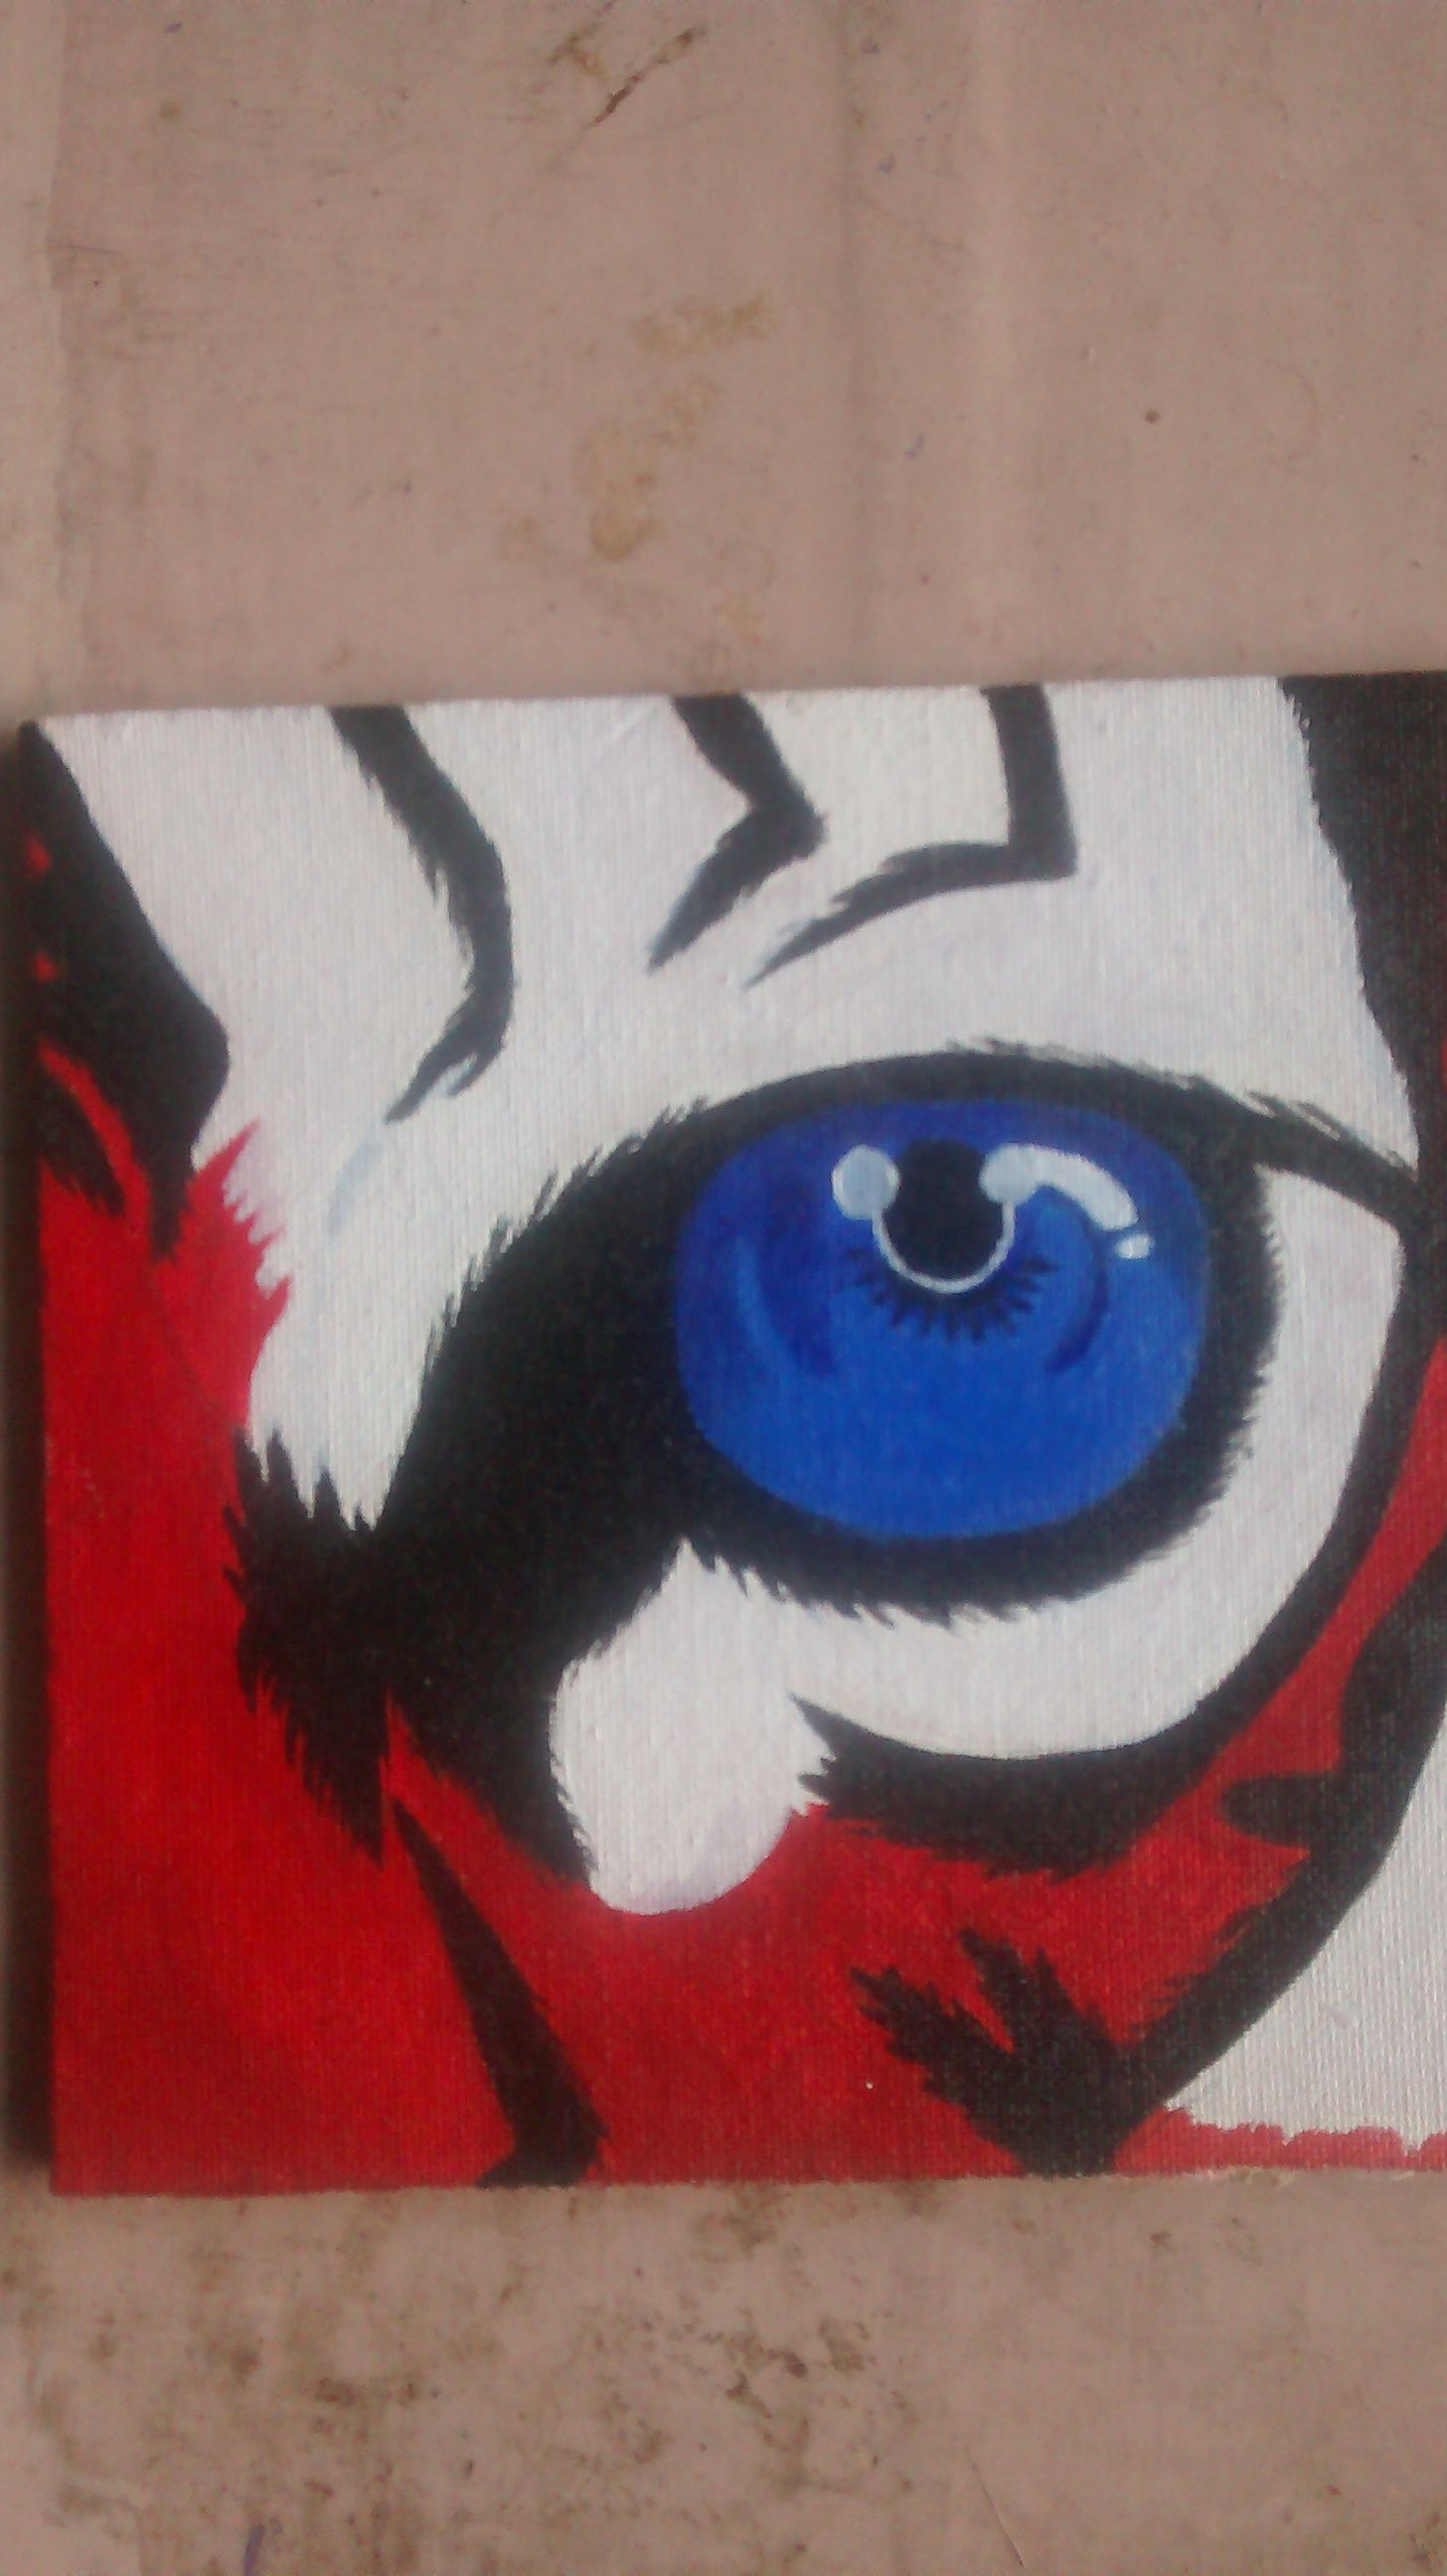 My painting on self prepared canvas